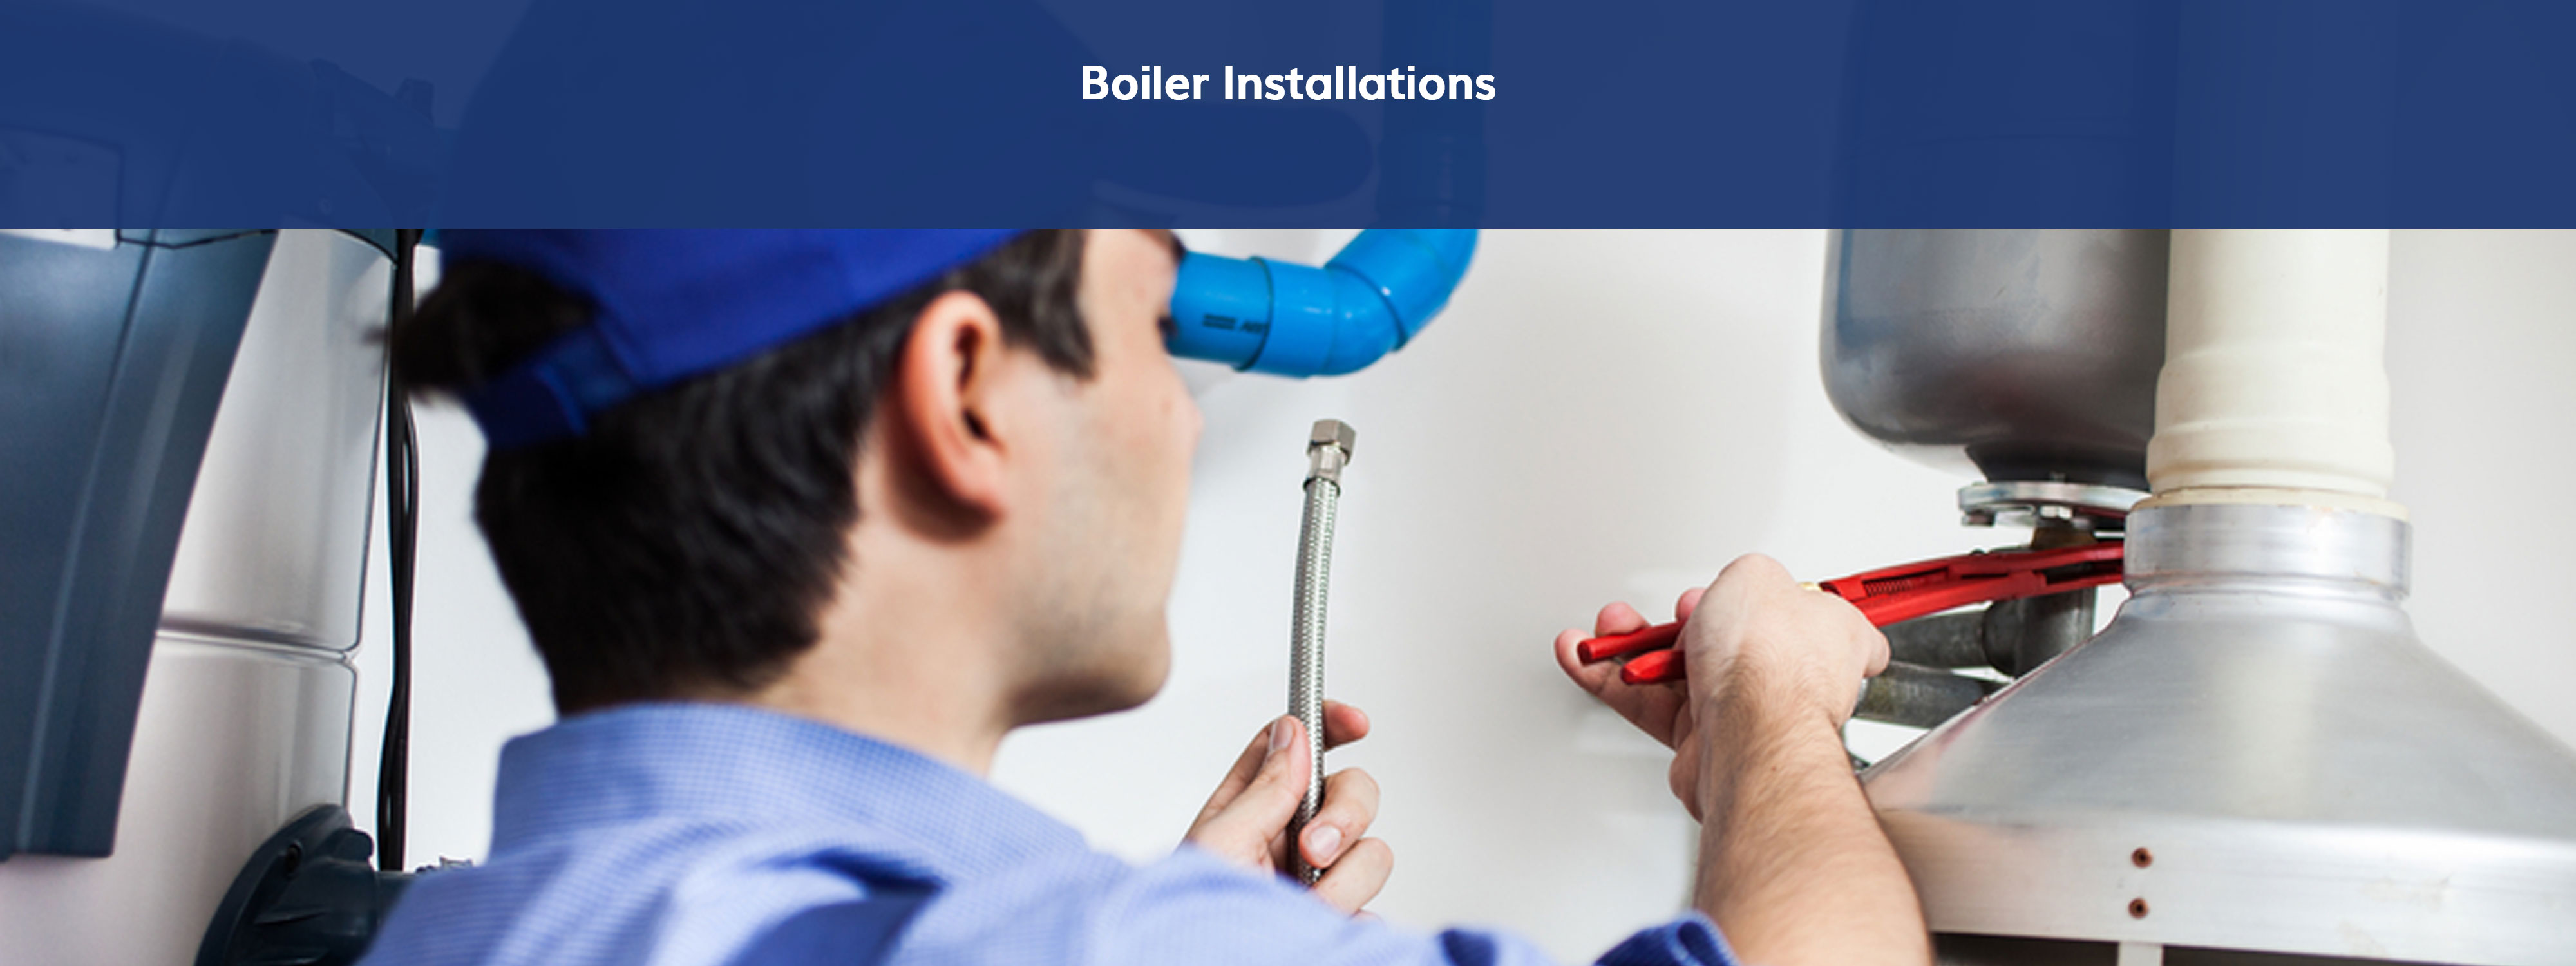 Boiler Installations Brough